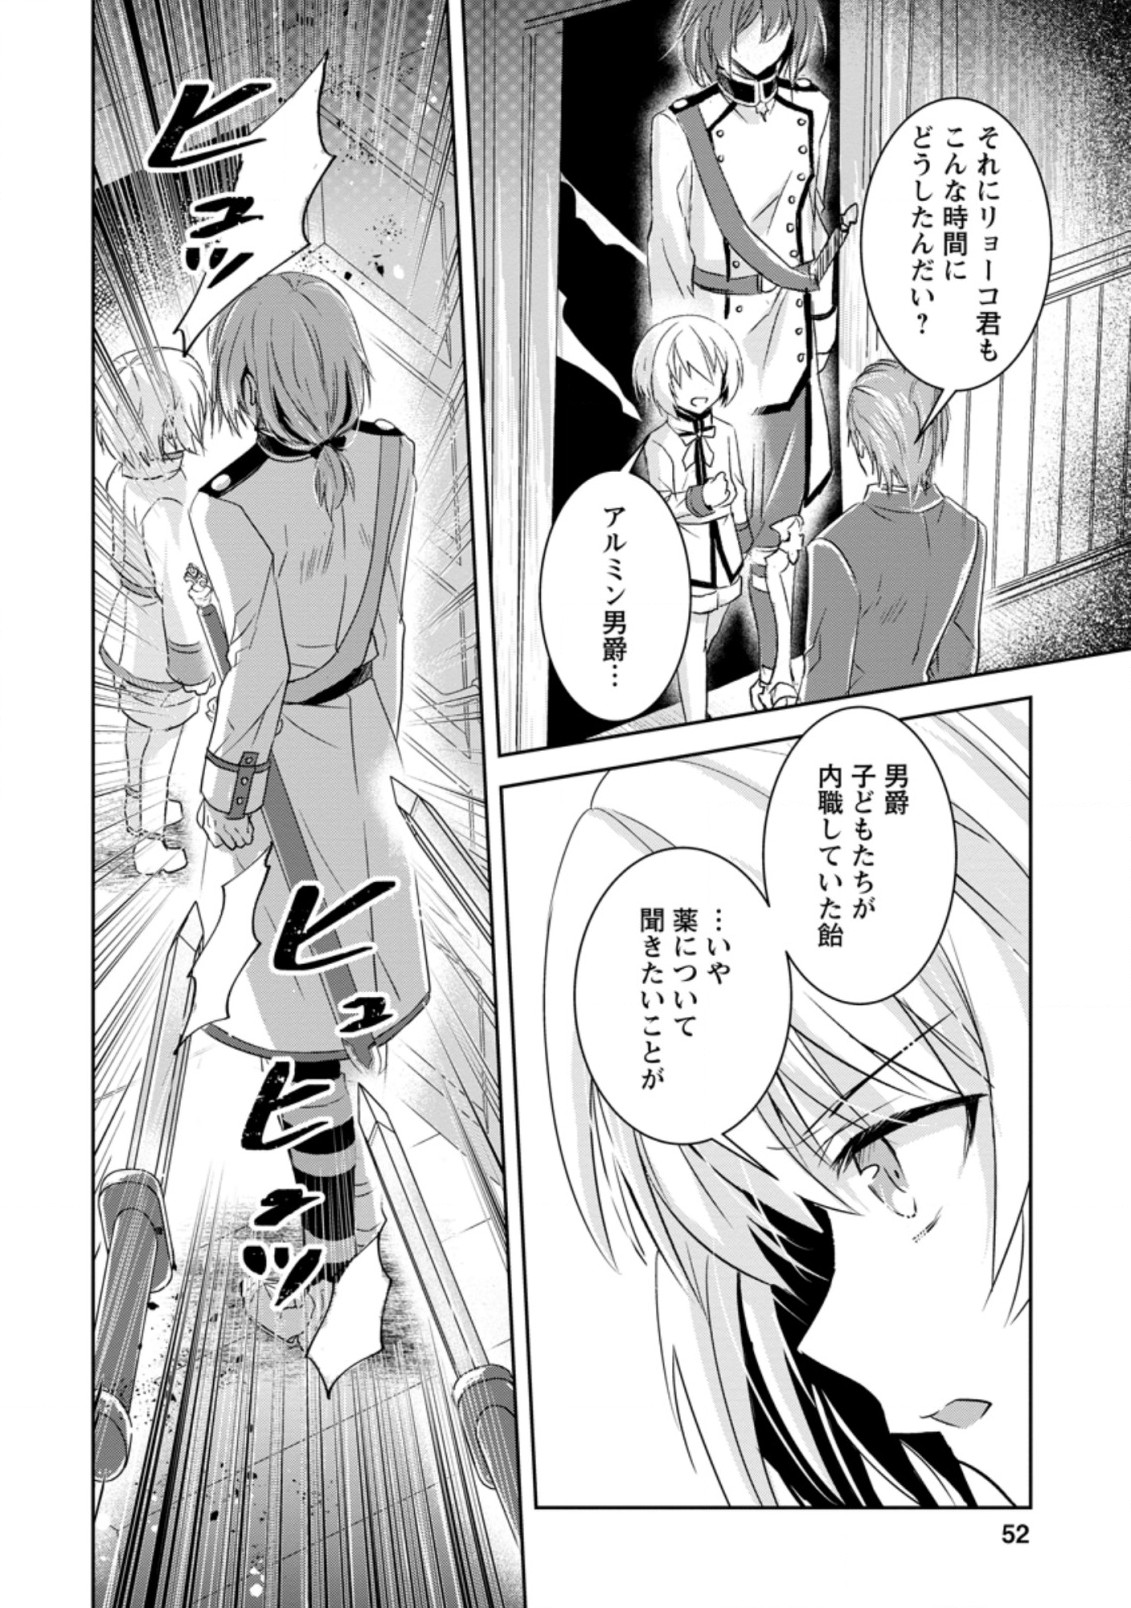 Manga Raw Herscherik R - The Epic of the Reincarnated Prince Chapter 07.2